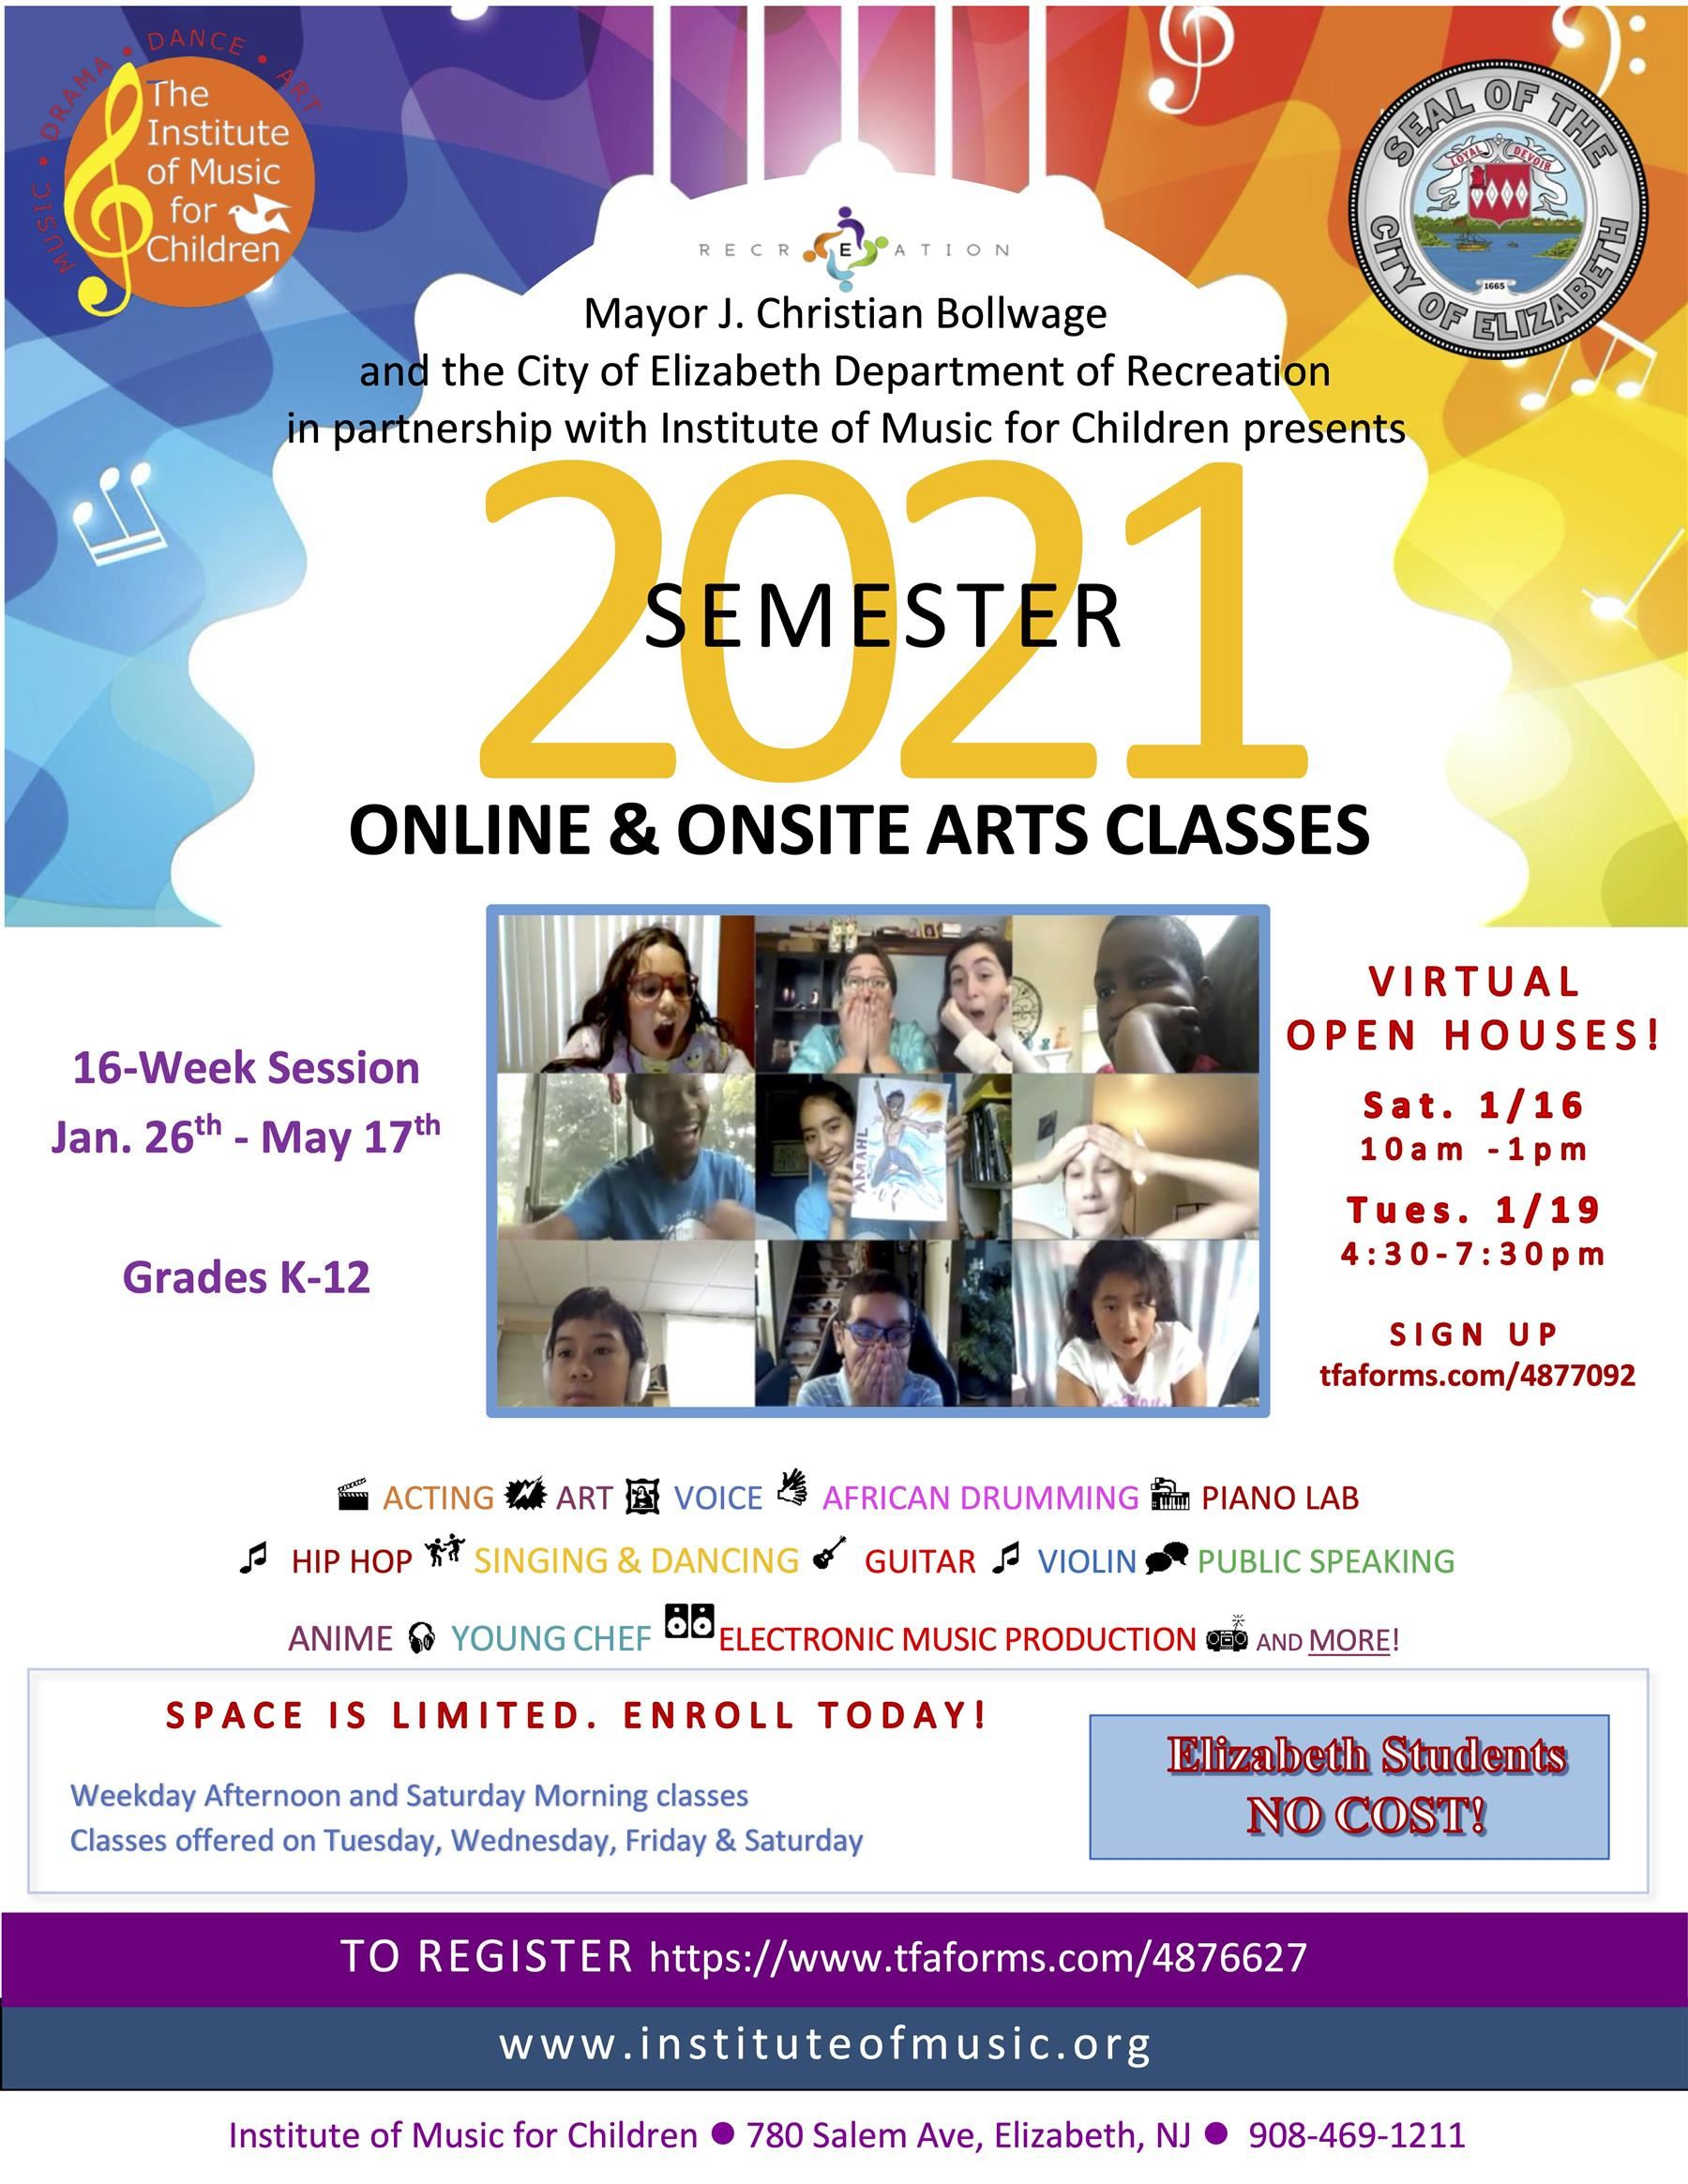 Institute of Music for Children 2021 Semester Online and Onsite Arts Classes